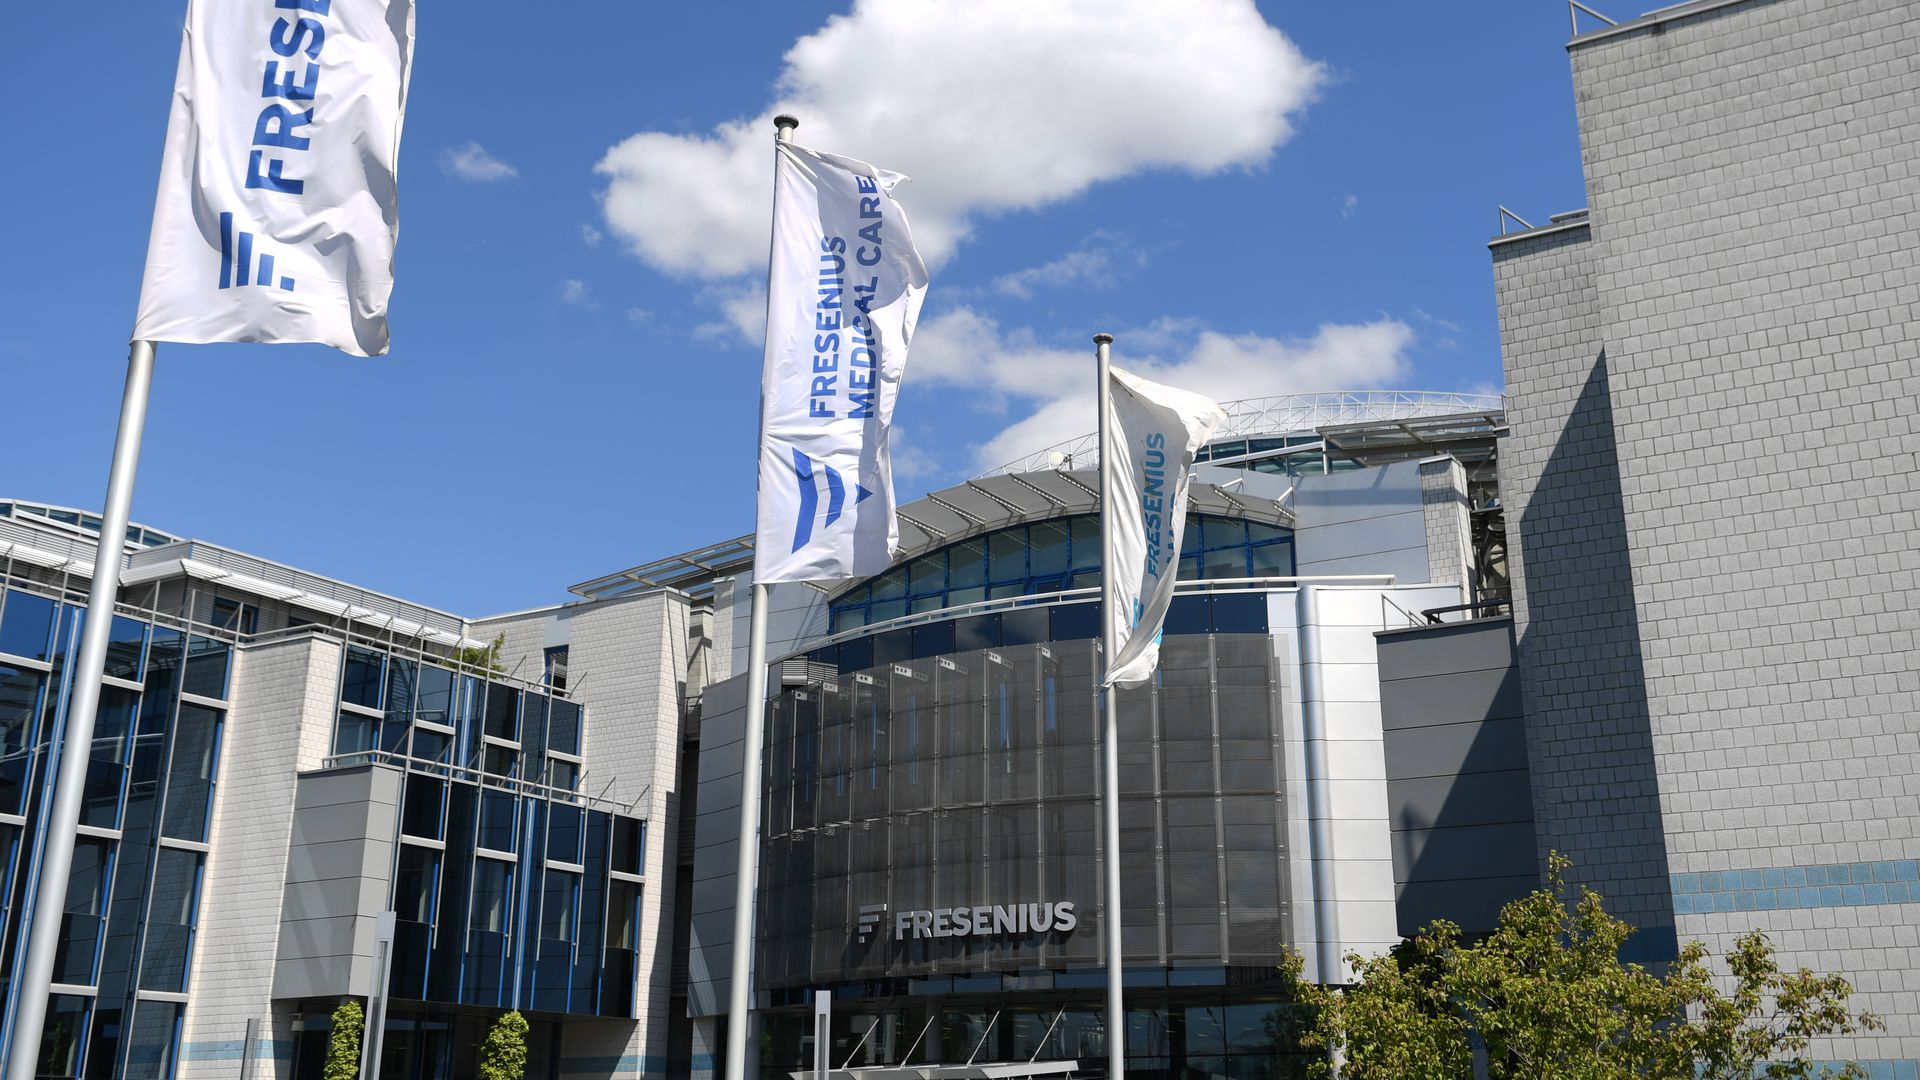 Fresenius flags fly in front of the Fresenius headquarters building.